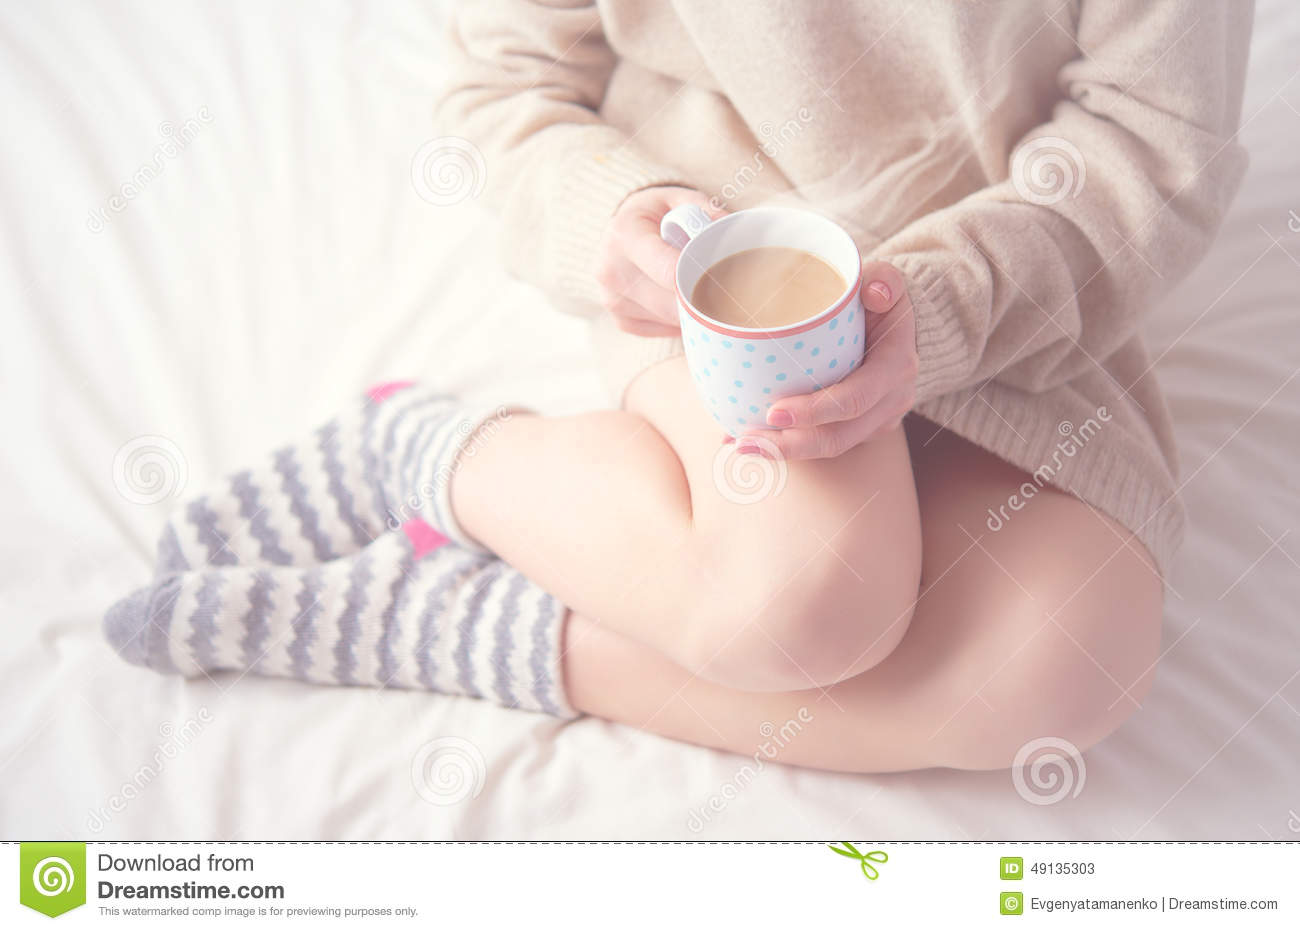 Legs of girl warm woolen socks and cup of coffee warming, winter morning in bed